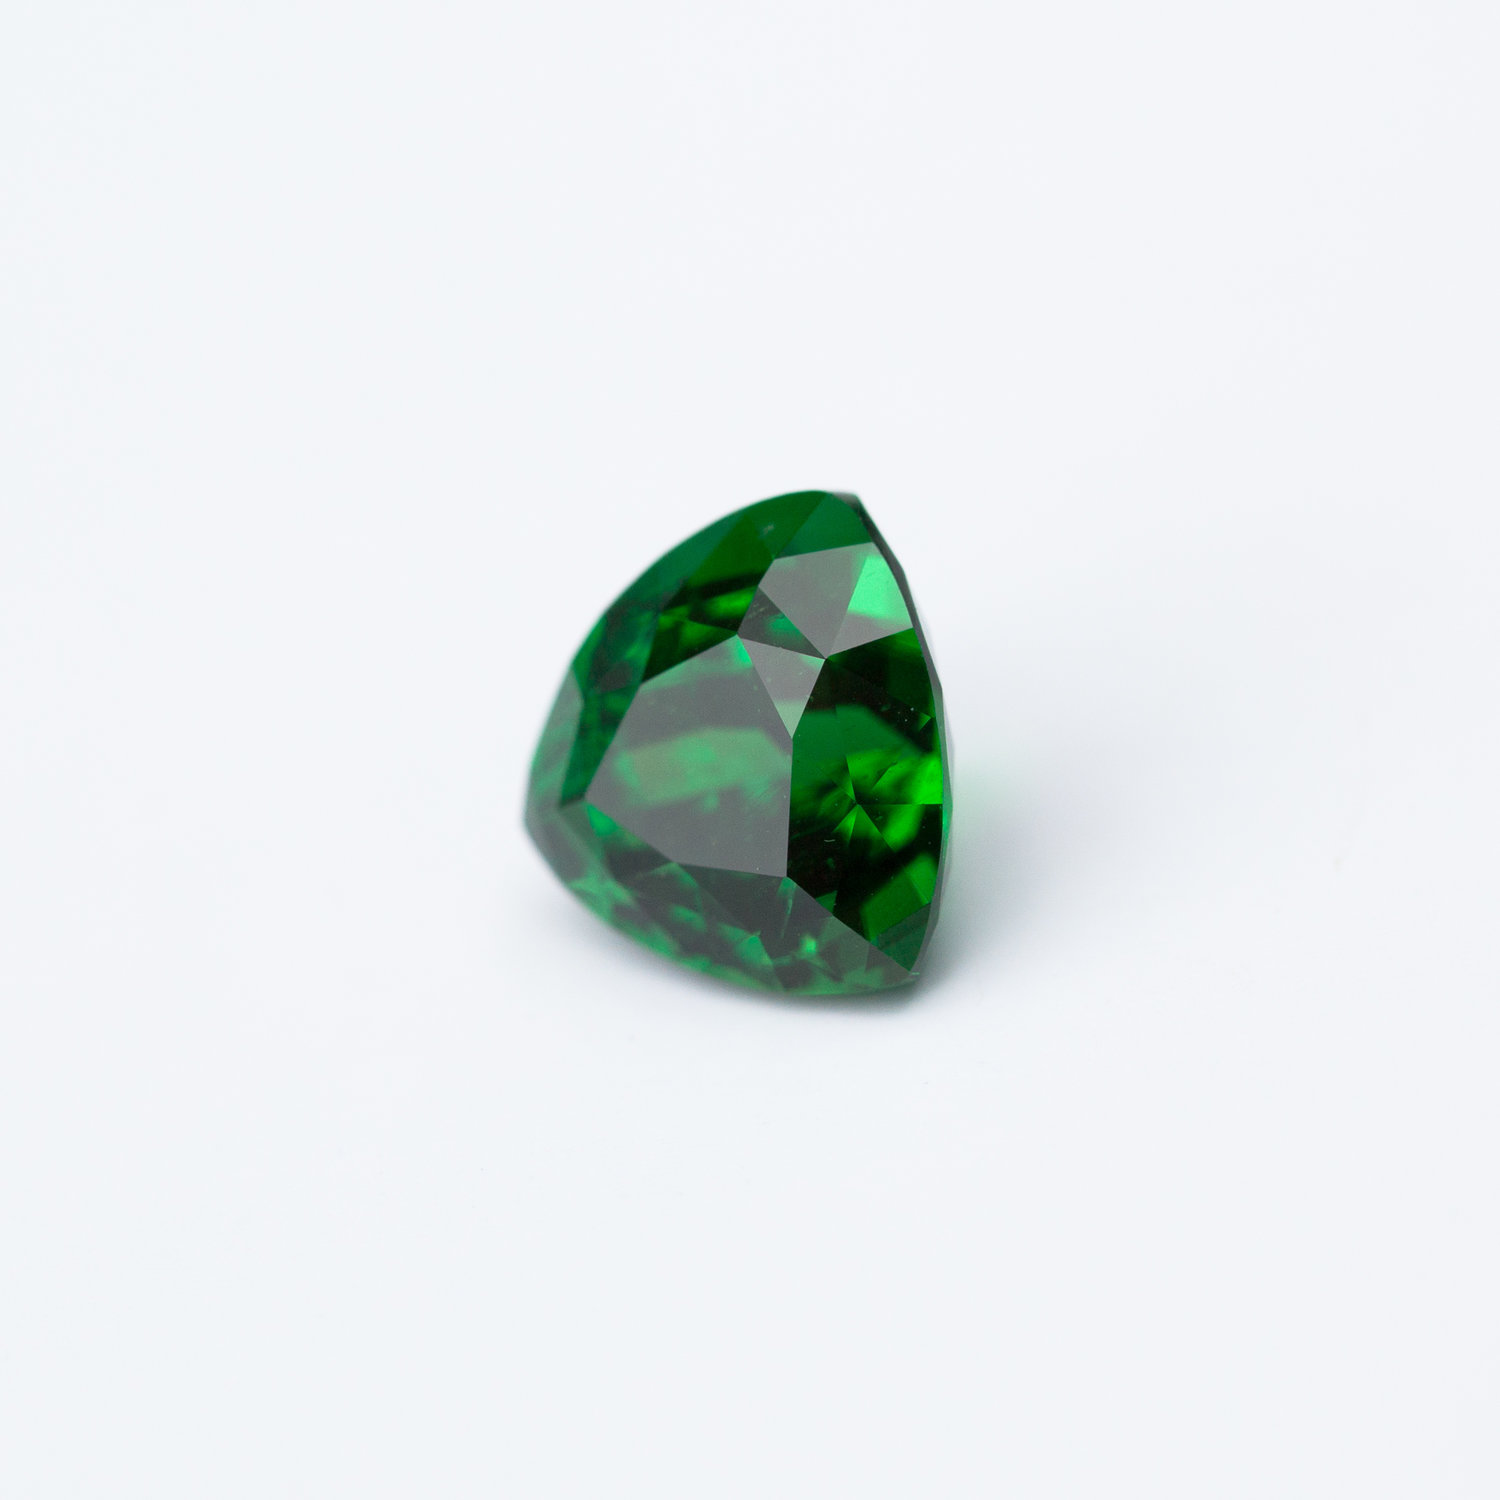 kenyan gemstone adventurer gem gemstones tsavorite